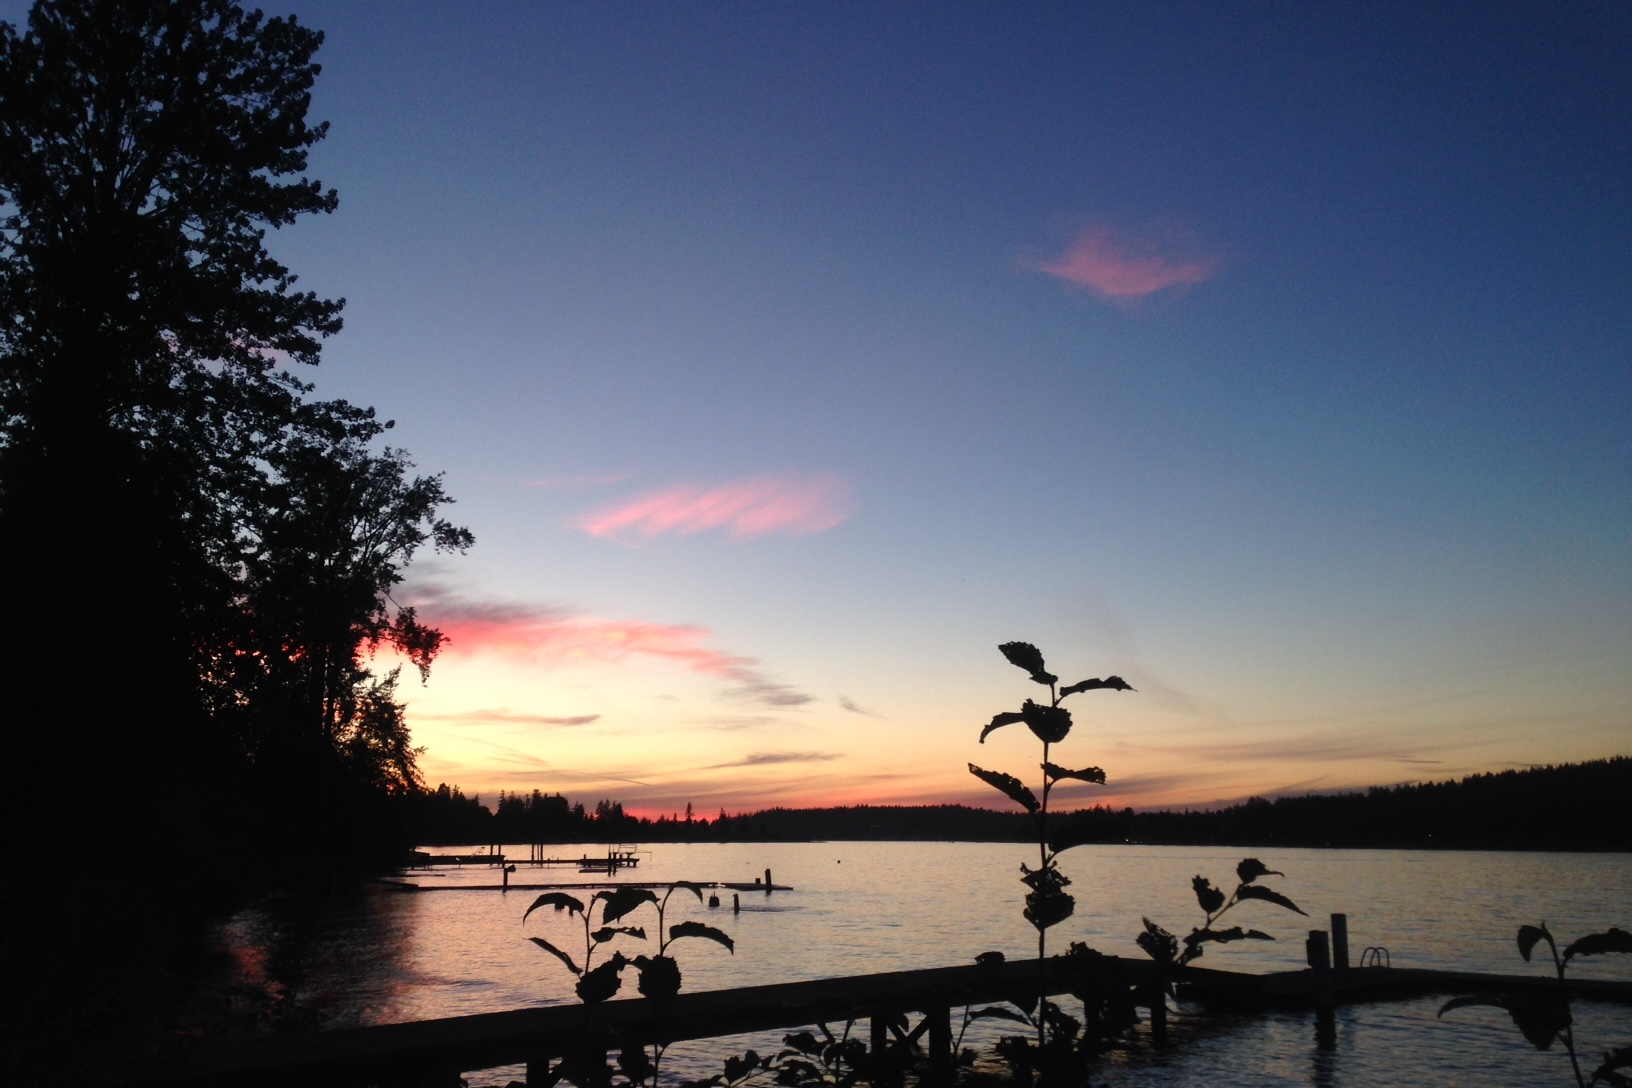 Sunset on Lake Whatcom. Can you believe those colors are even real?